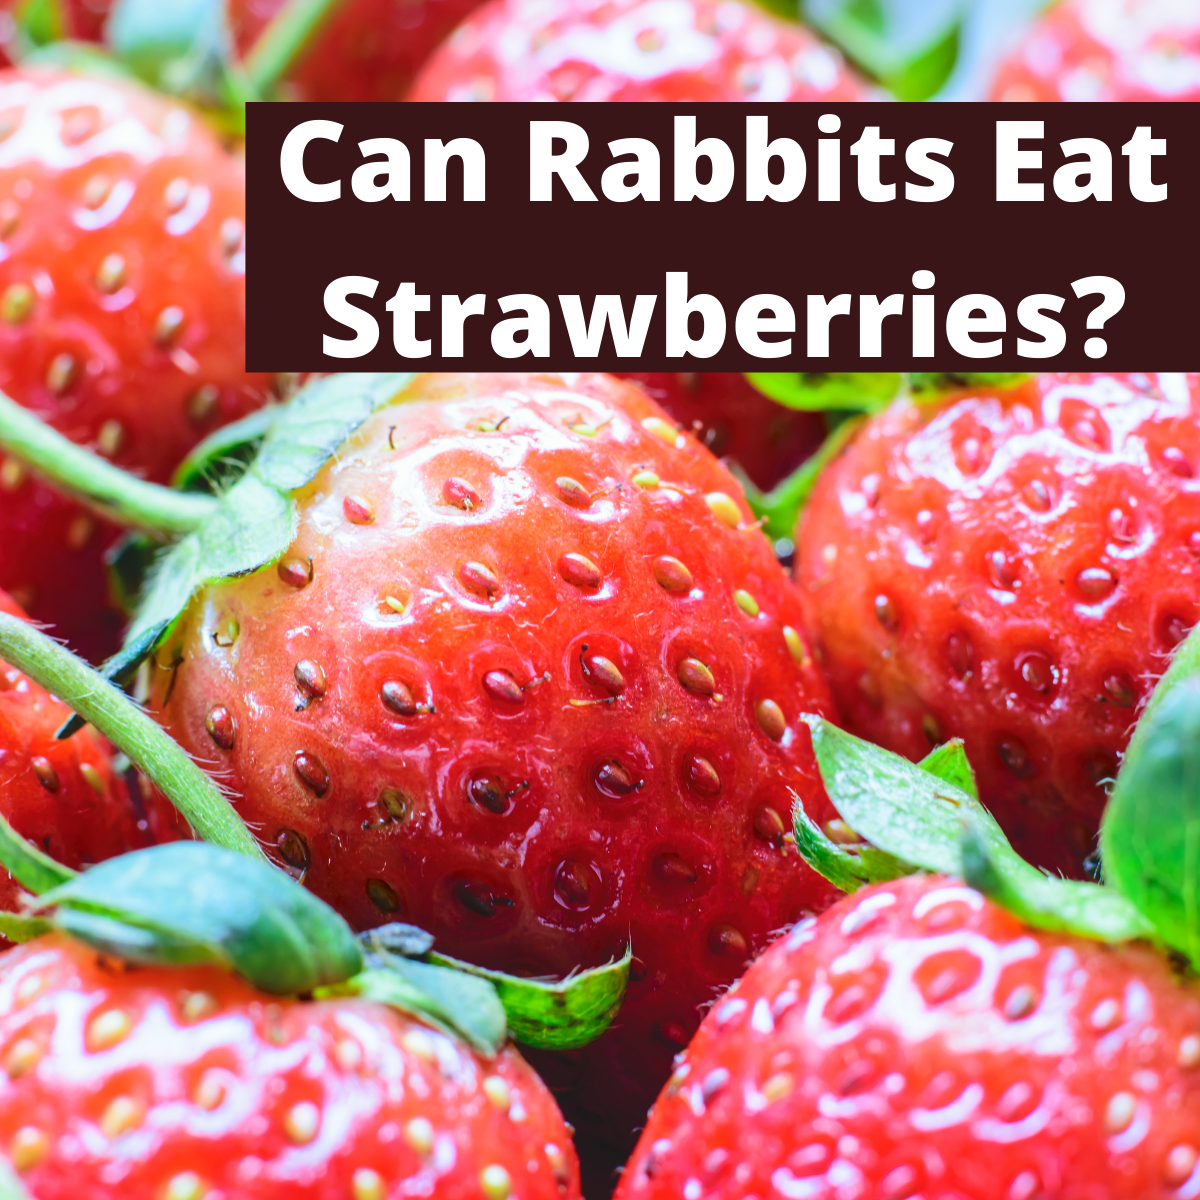 Strawberries and text Can Rabbits Eat Strawberries?